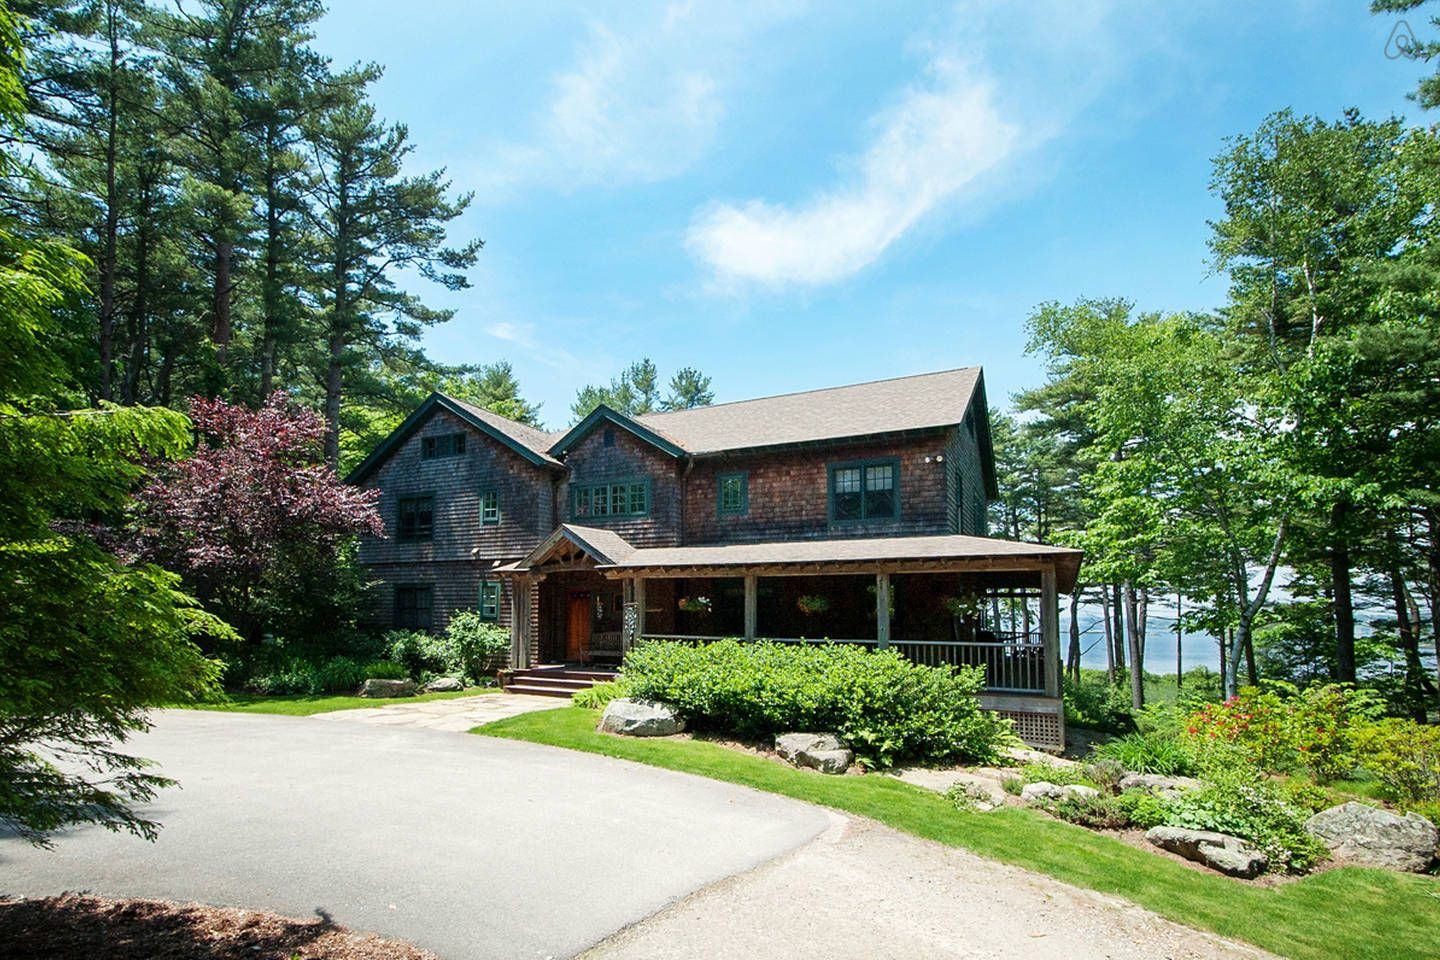 Lovely Waterfront Home With Beach Vacation Al In Portsmouth New Hampshire View More Portsmouthnewhampshirevacationals